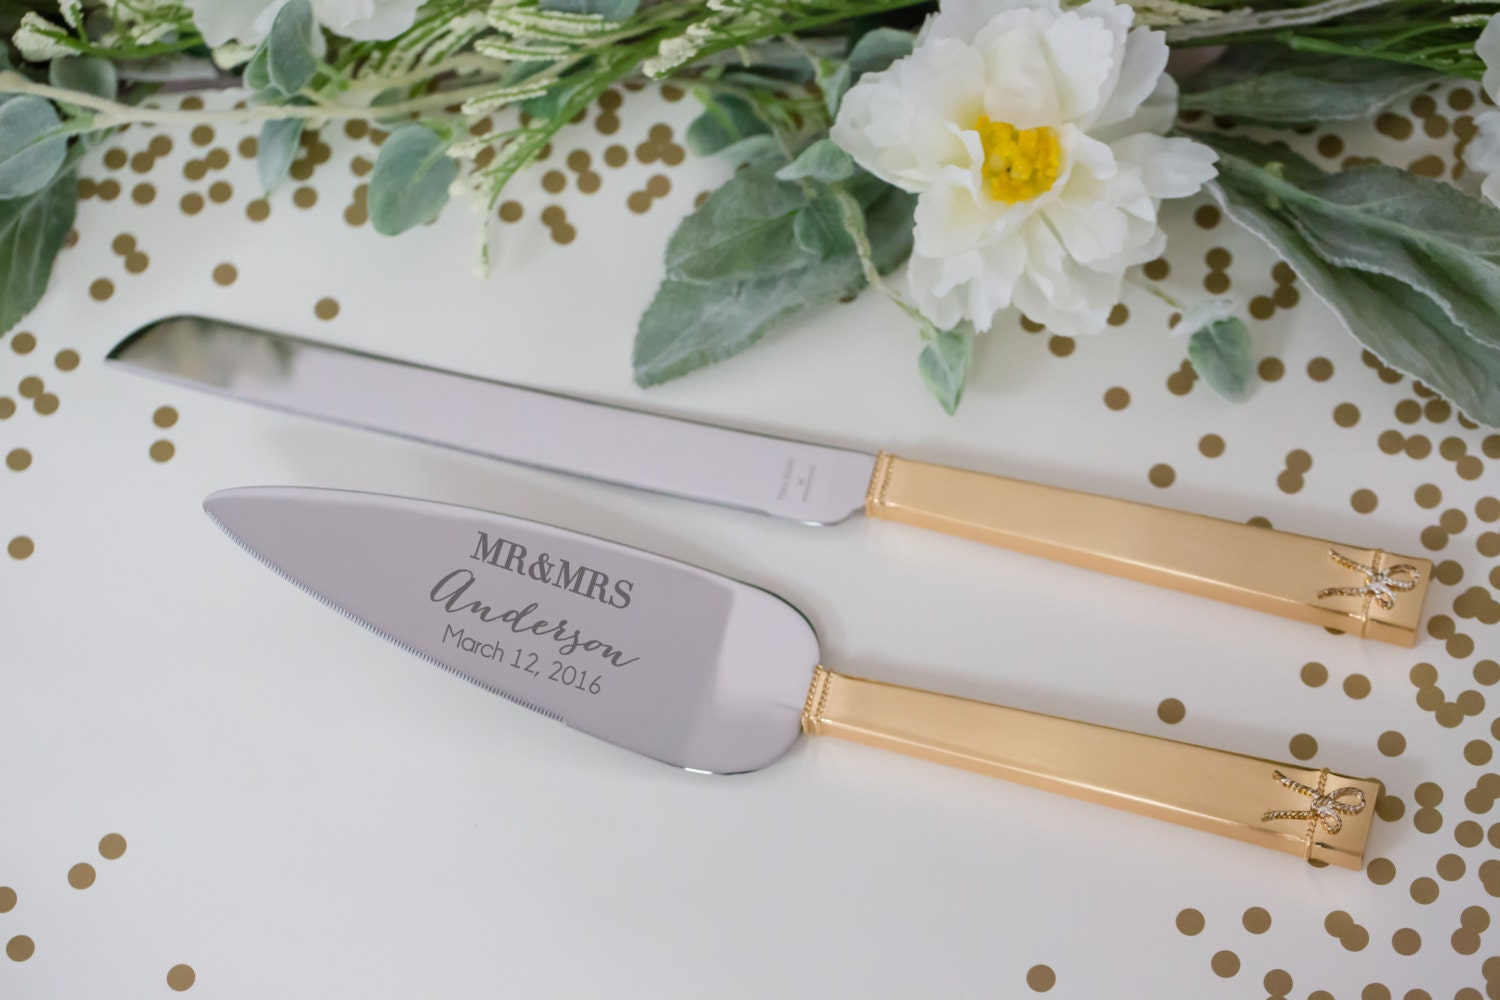 personalized vera wang love knots gold wedding cake serving set Wedding Cake Knife and Server Set 2 PC zoom